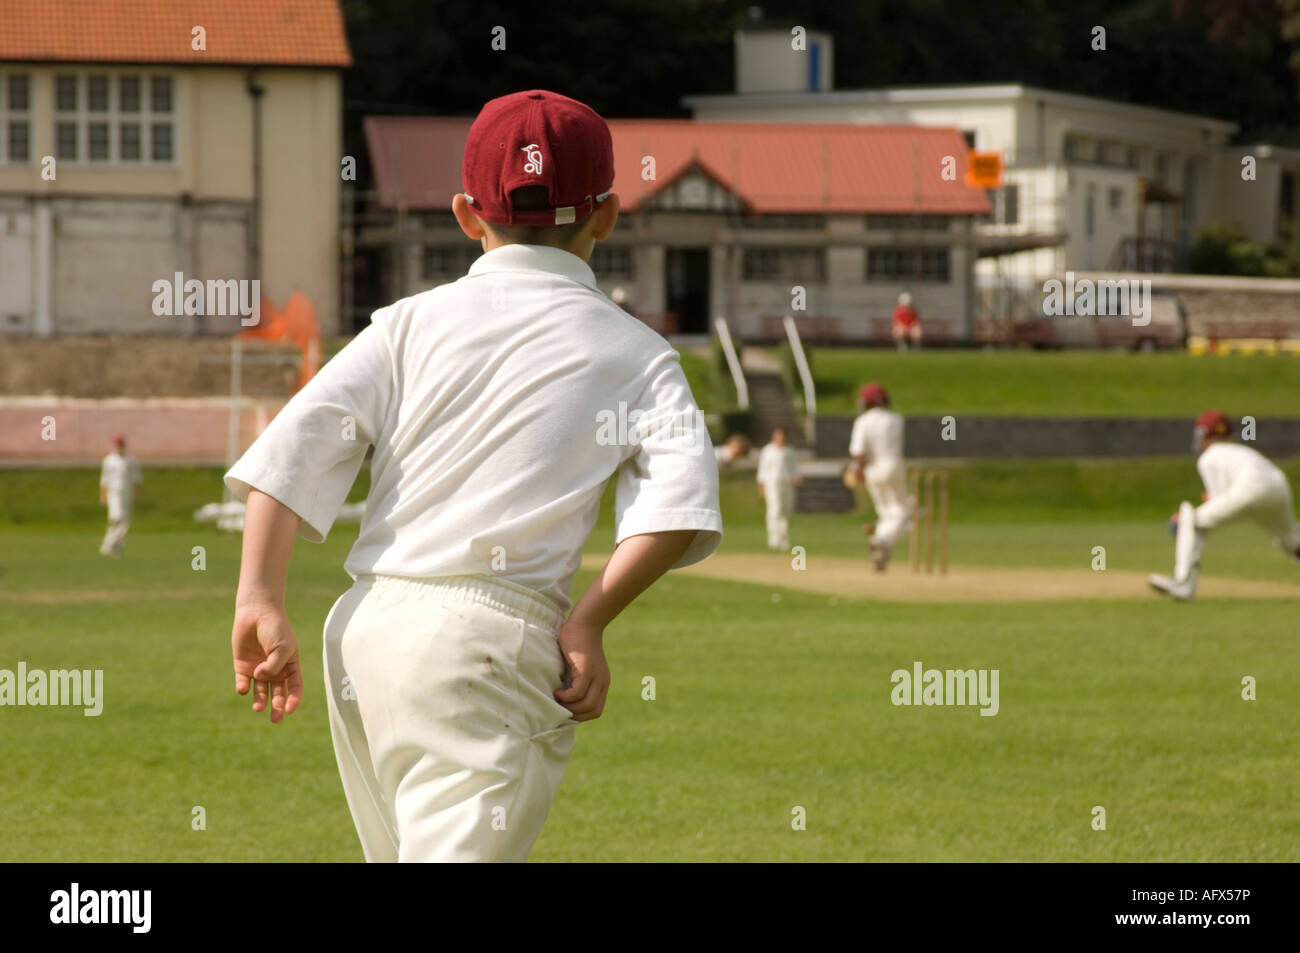 young boy fielding in Welsh Under 10's national school cricket competition Aberystwyth Summer 2007 UK GB Britain - Stock Image